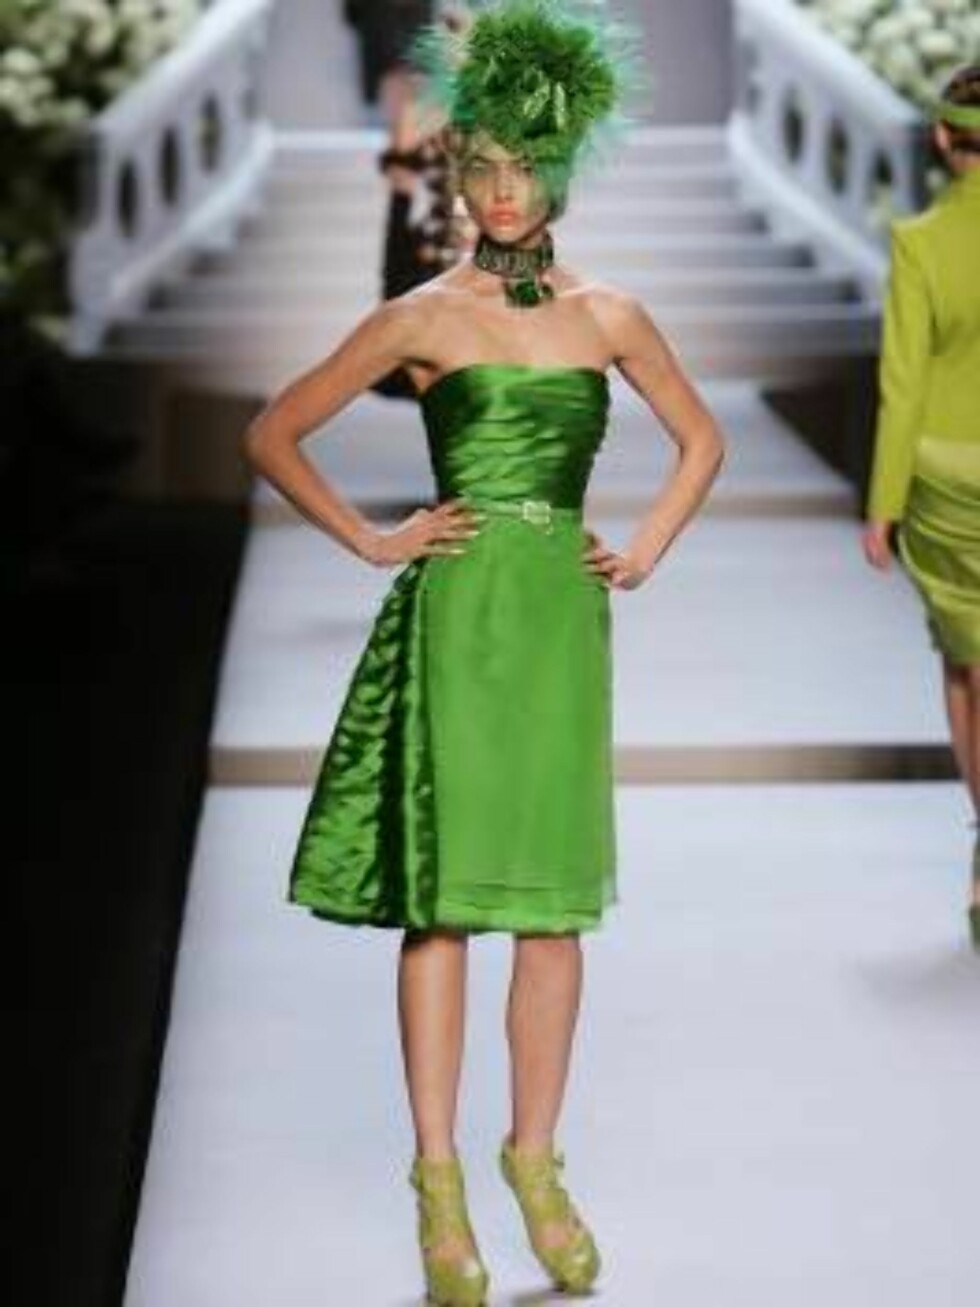 A model displays a creation by British fashion designer John Galliano for the house Christian Dior during his Fall-Winter 2007-2008 Ready-to-Wear collection show held at the Jardins des Tuileries in Paris, France on February 27, 2007.   Photo by Java/ABAC Foto: Stella Pictures